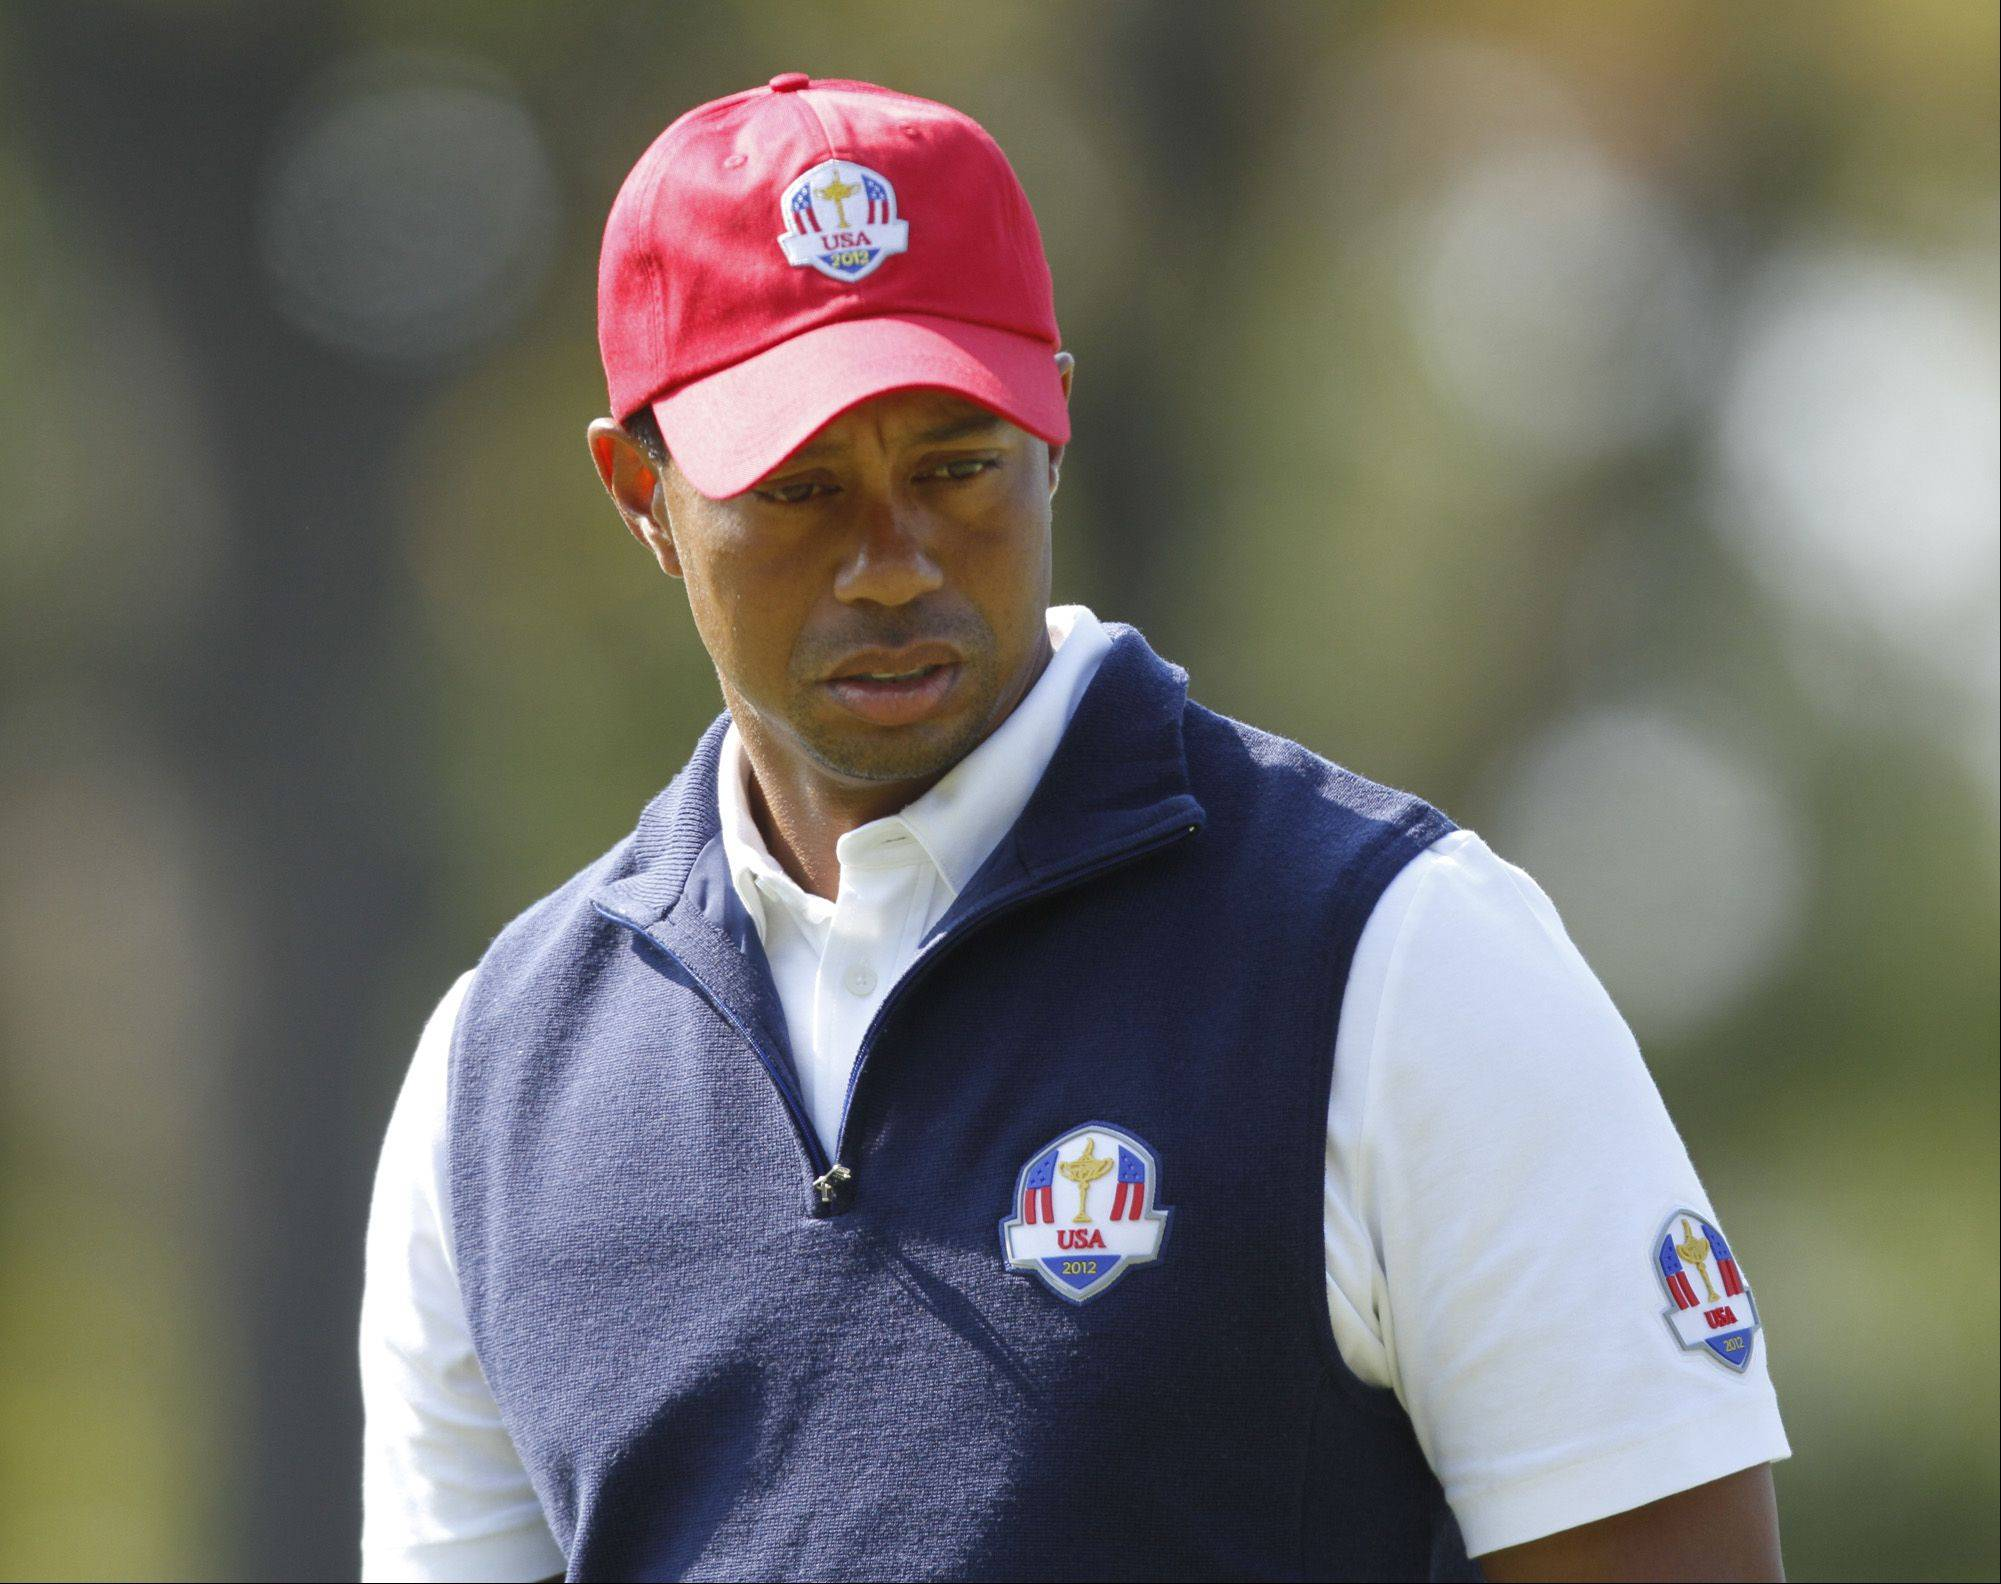 Tiger Woods on opening day of the 2012 Ryder Cup at Medinah Country Club.